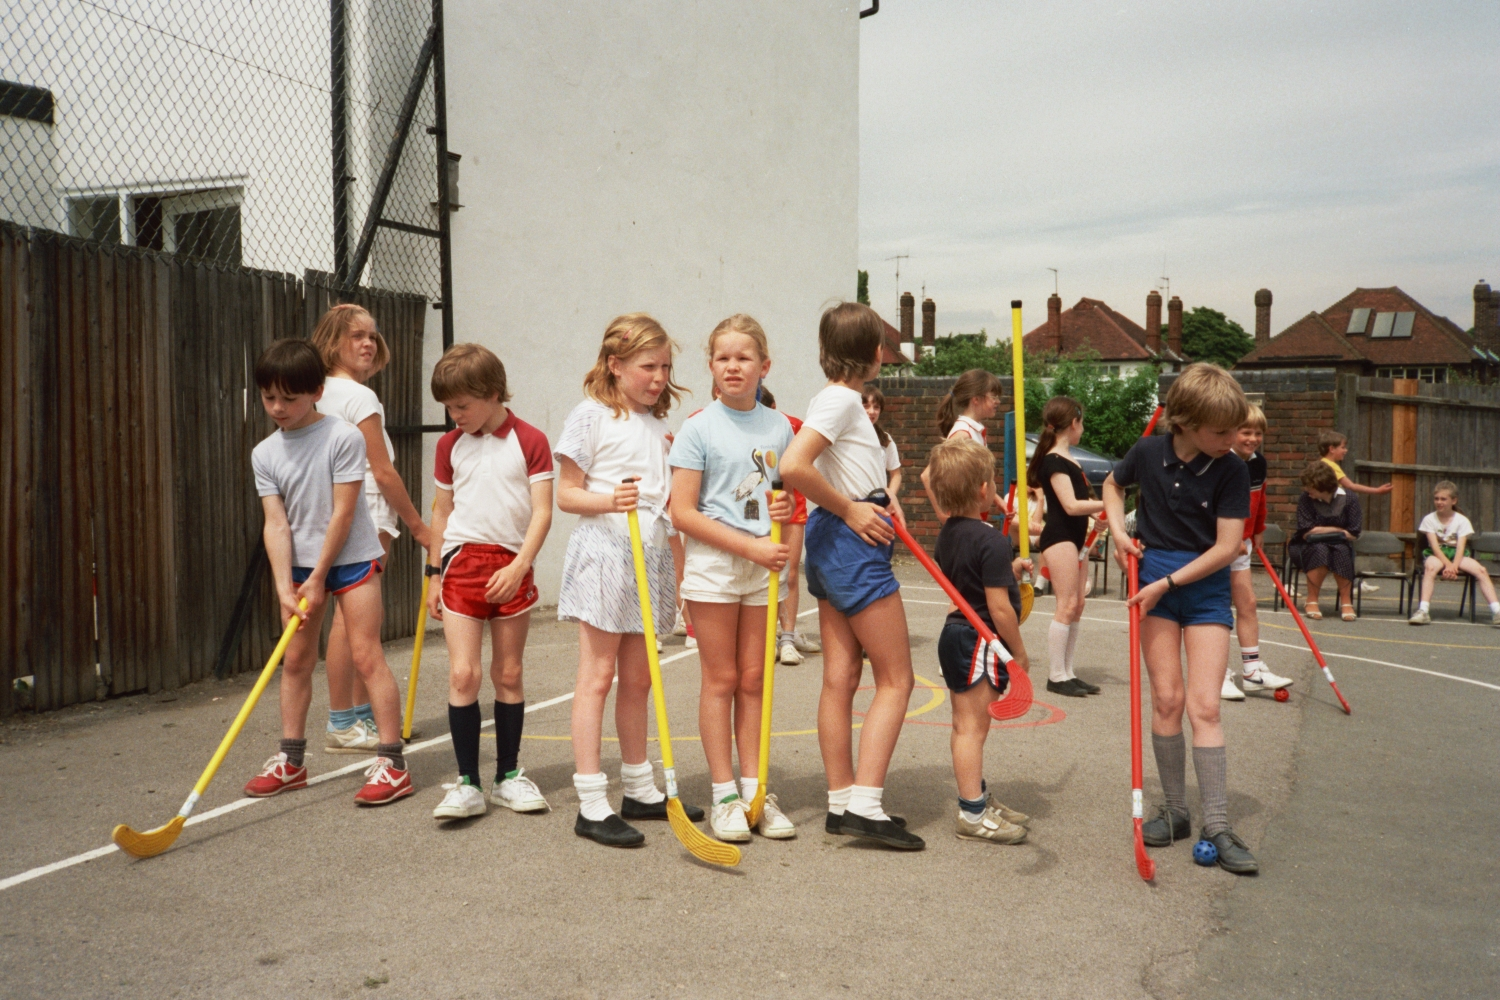 annual sports day composition for primary school